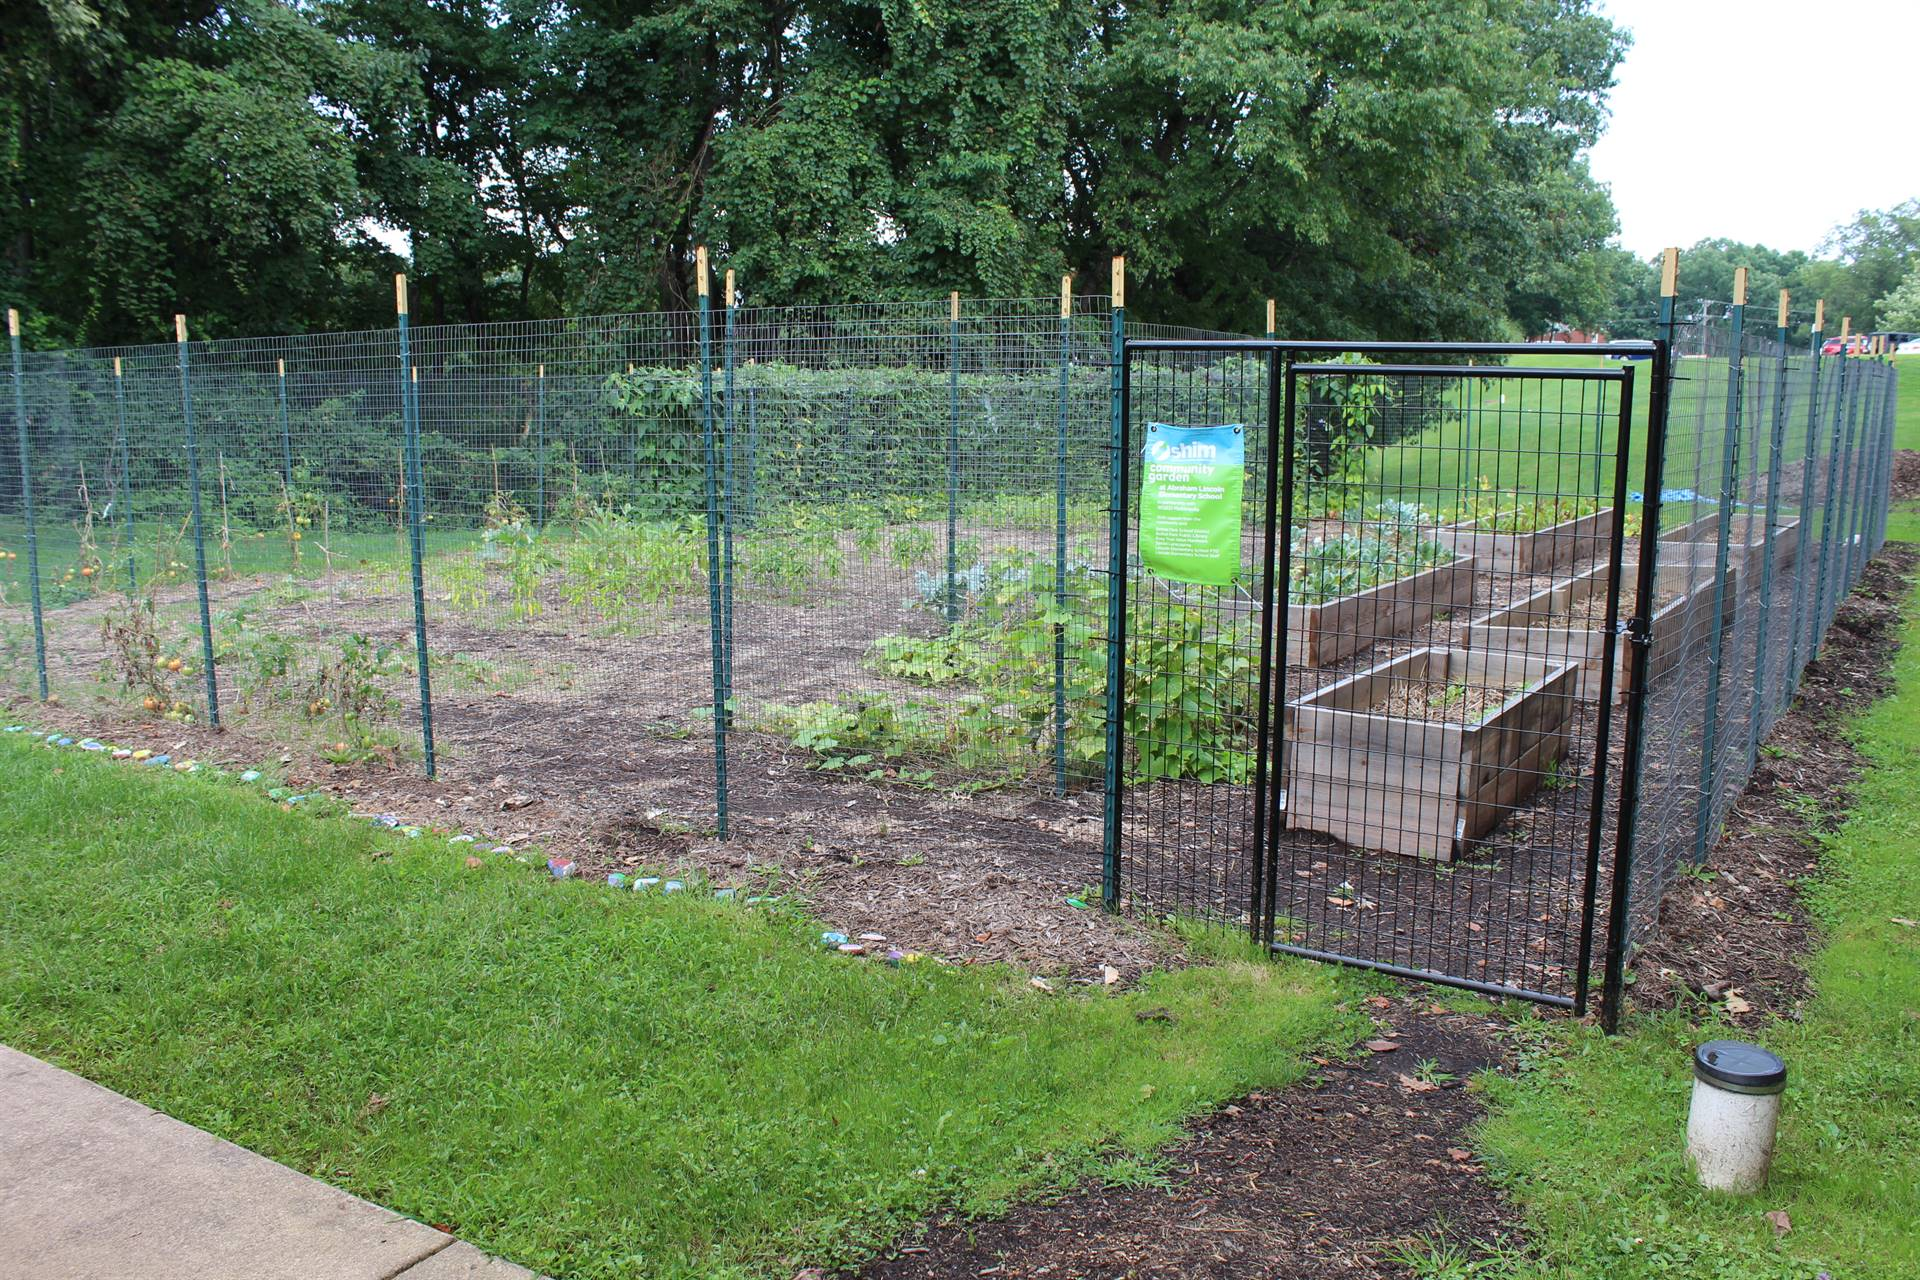 The Lincoln Community Garden